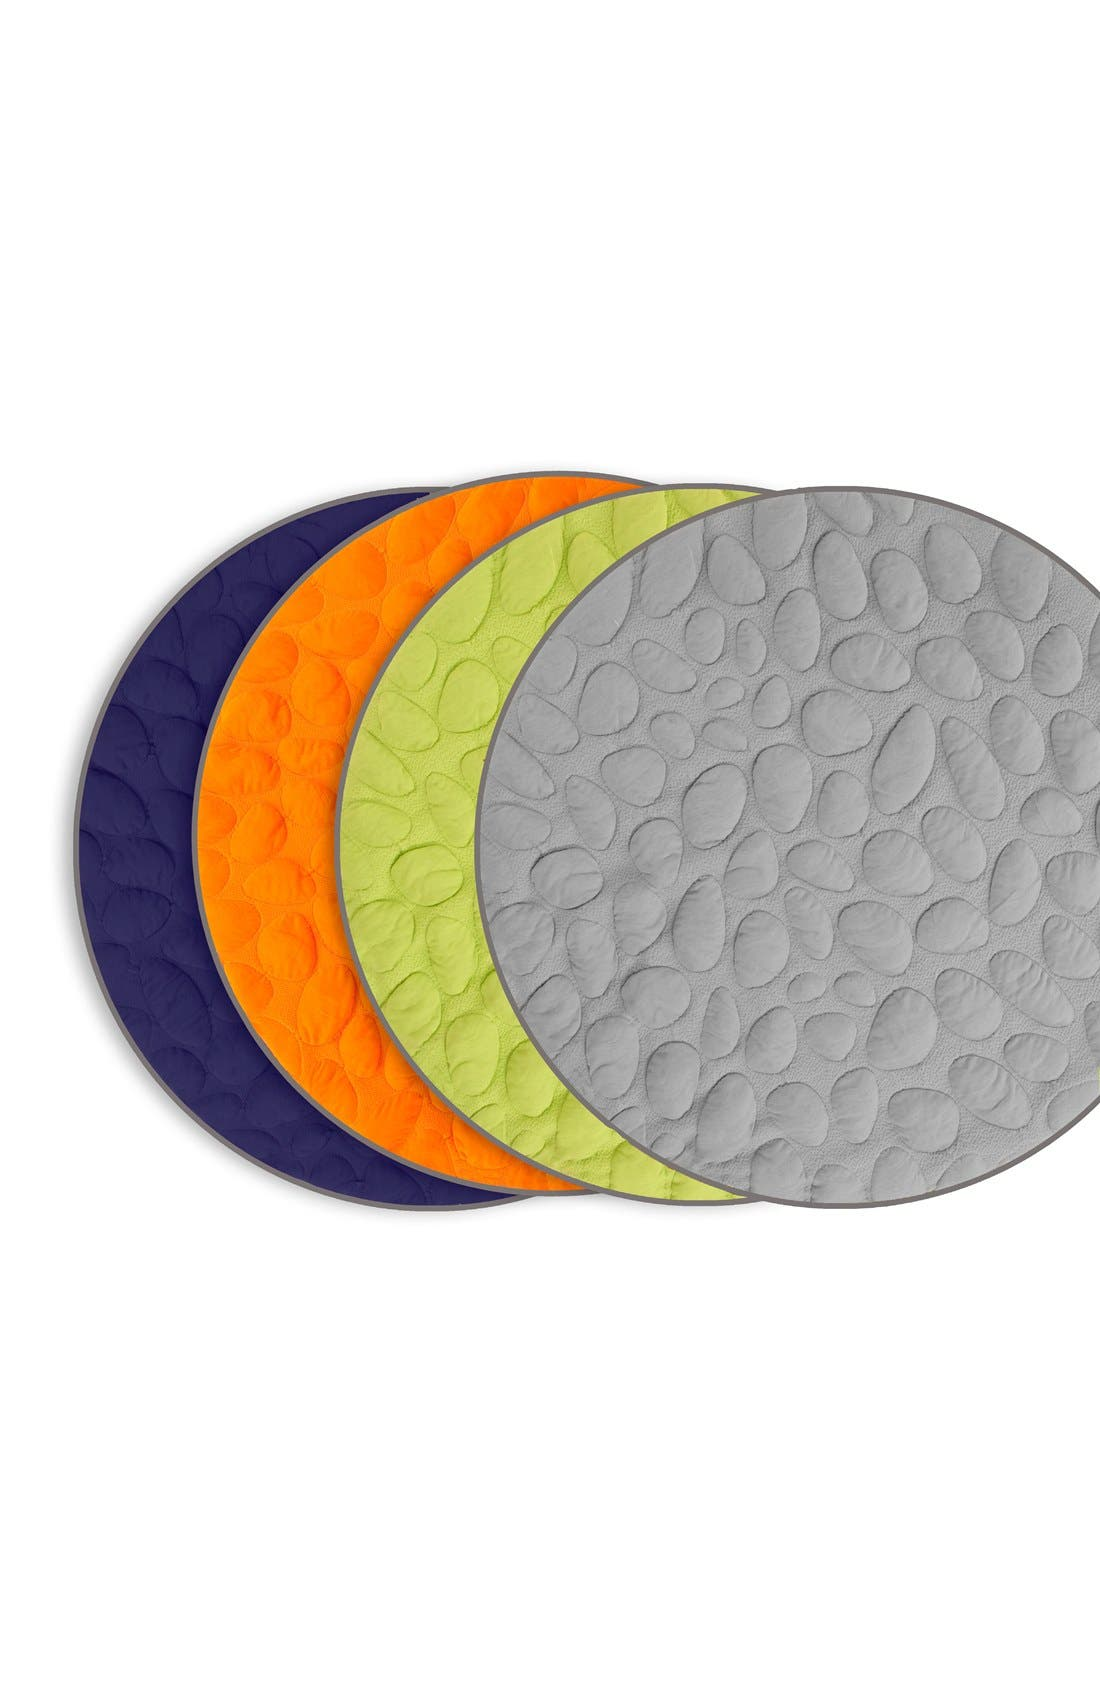 'Pebble LilyPad' Play Mat,                             Alternate thumbnail 2, color,                             MISTY